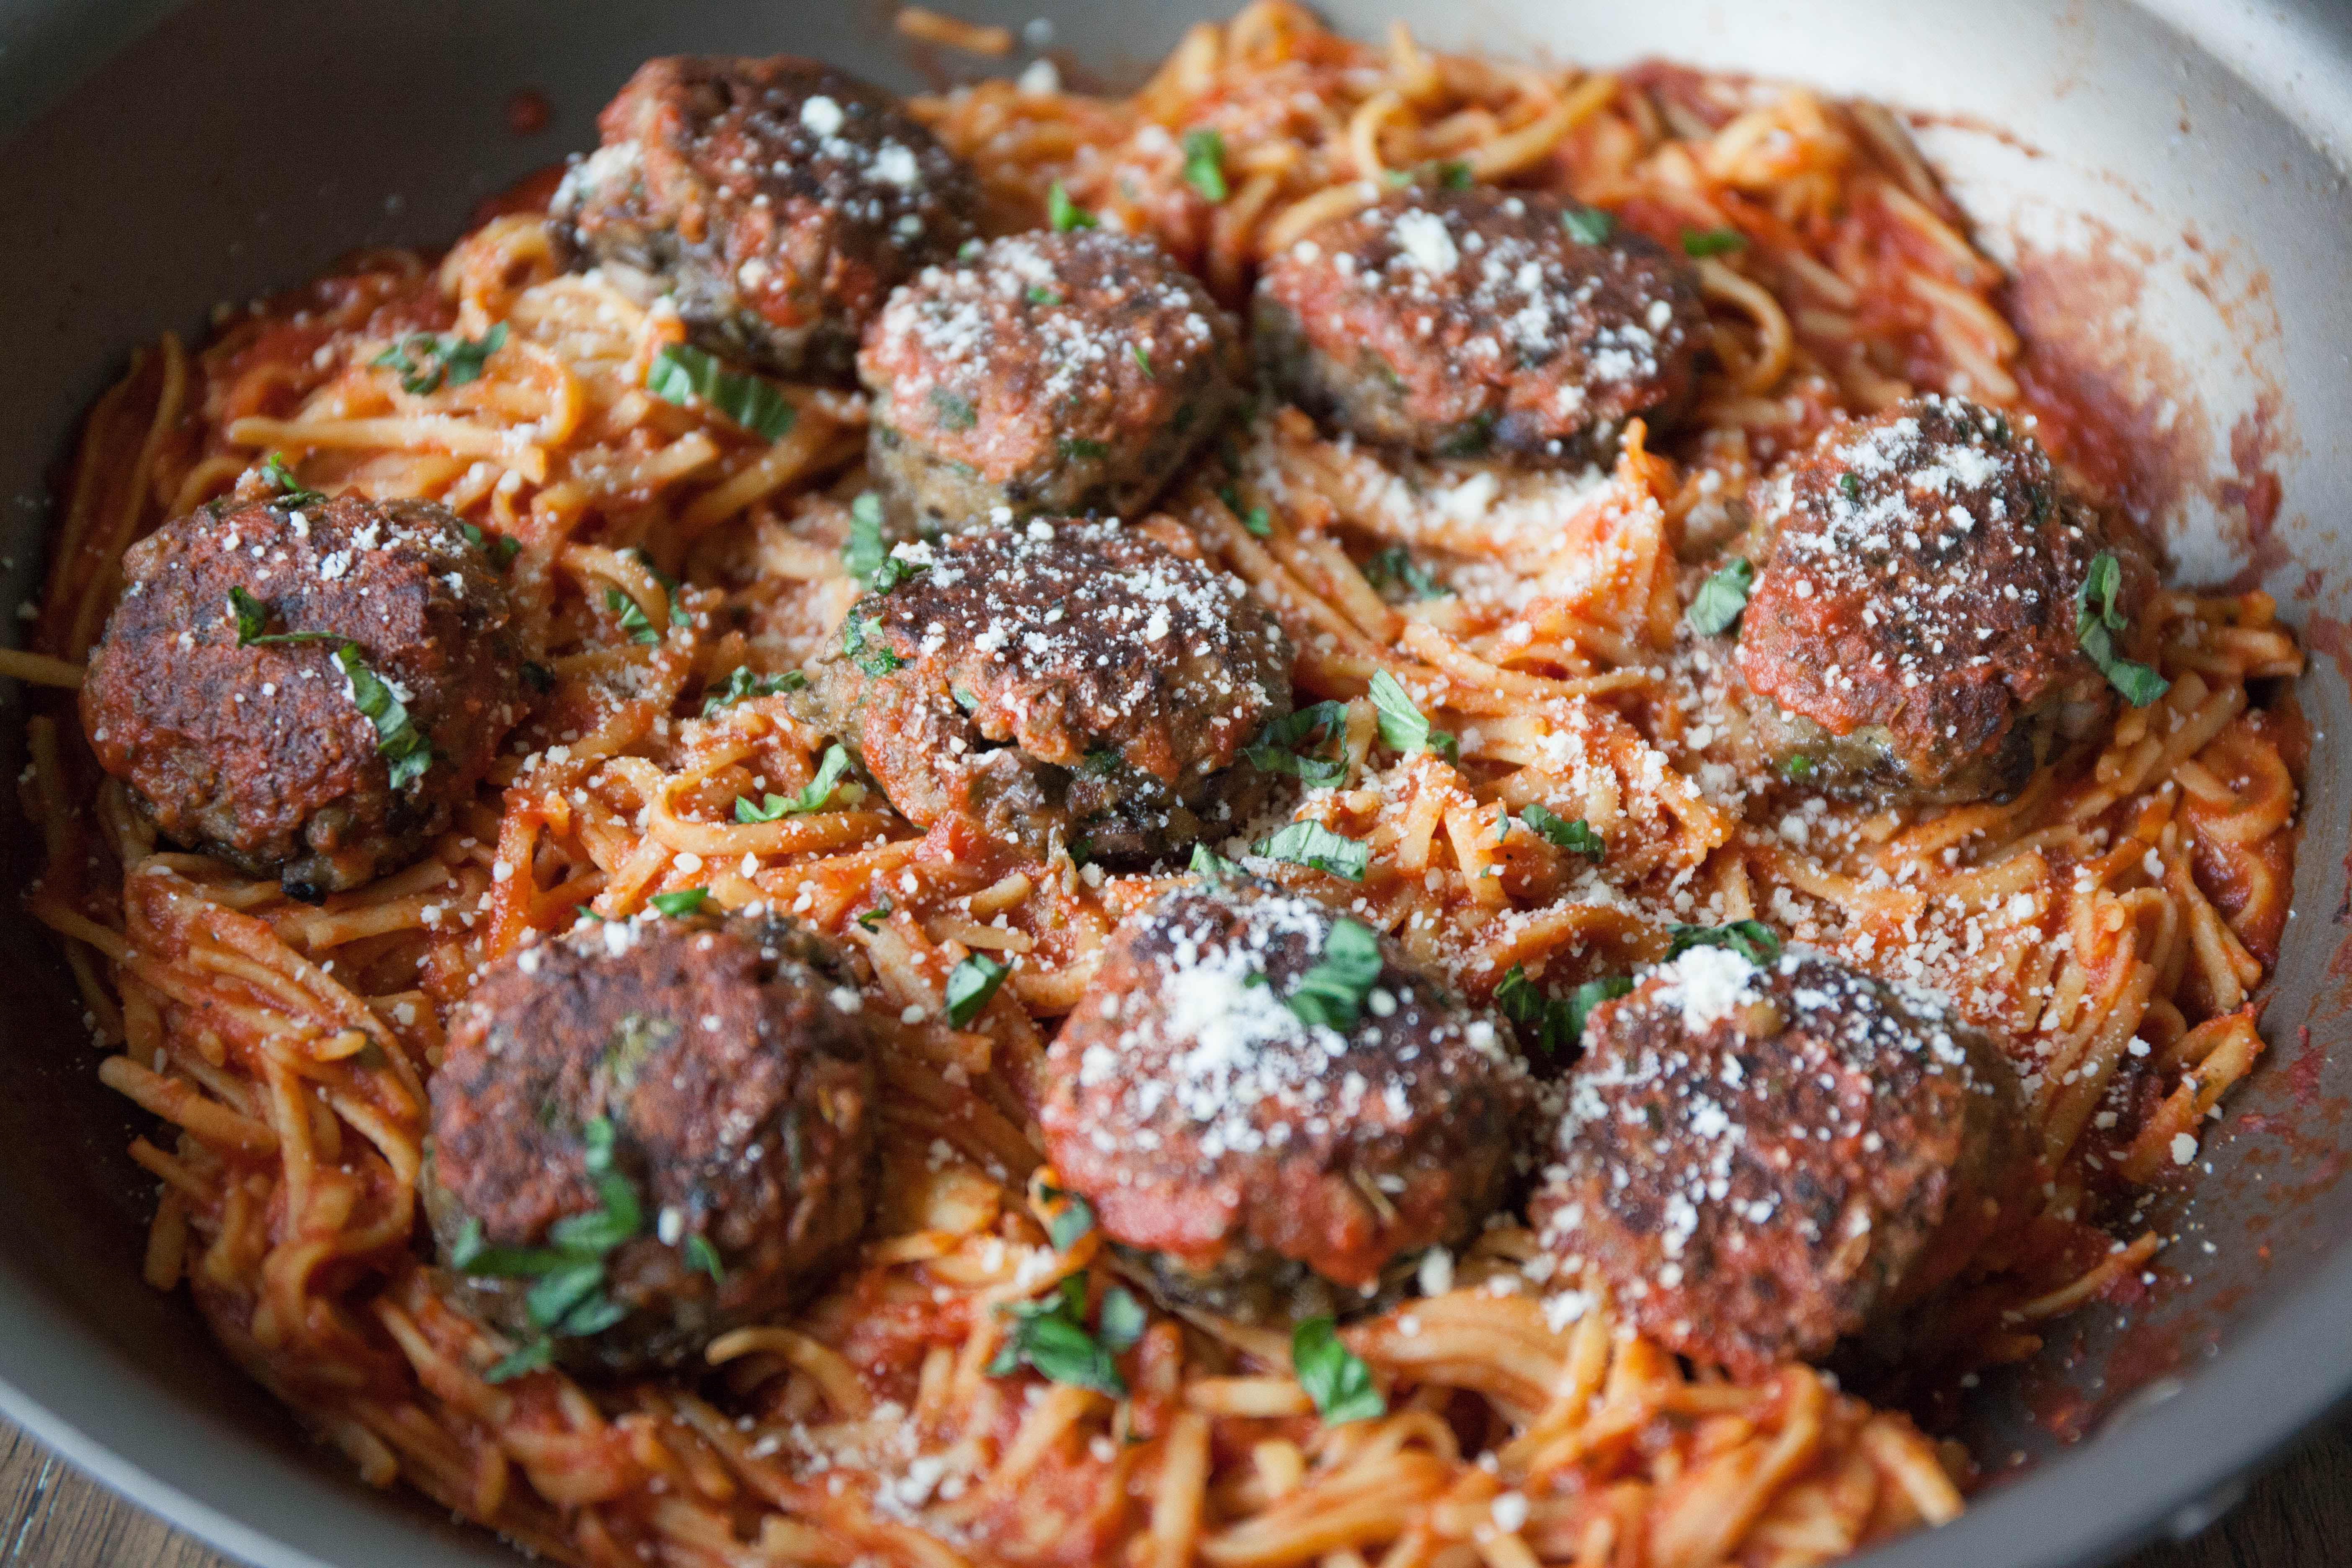 Vegetarian Meatball Recipes  My Healthy Dish — Healthy recipes t food and nutrition